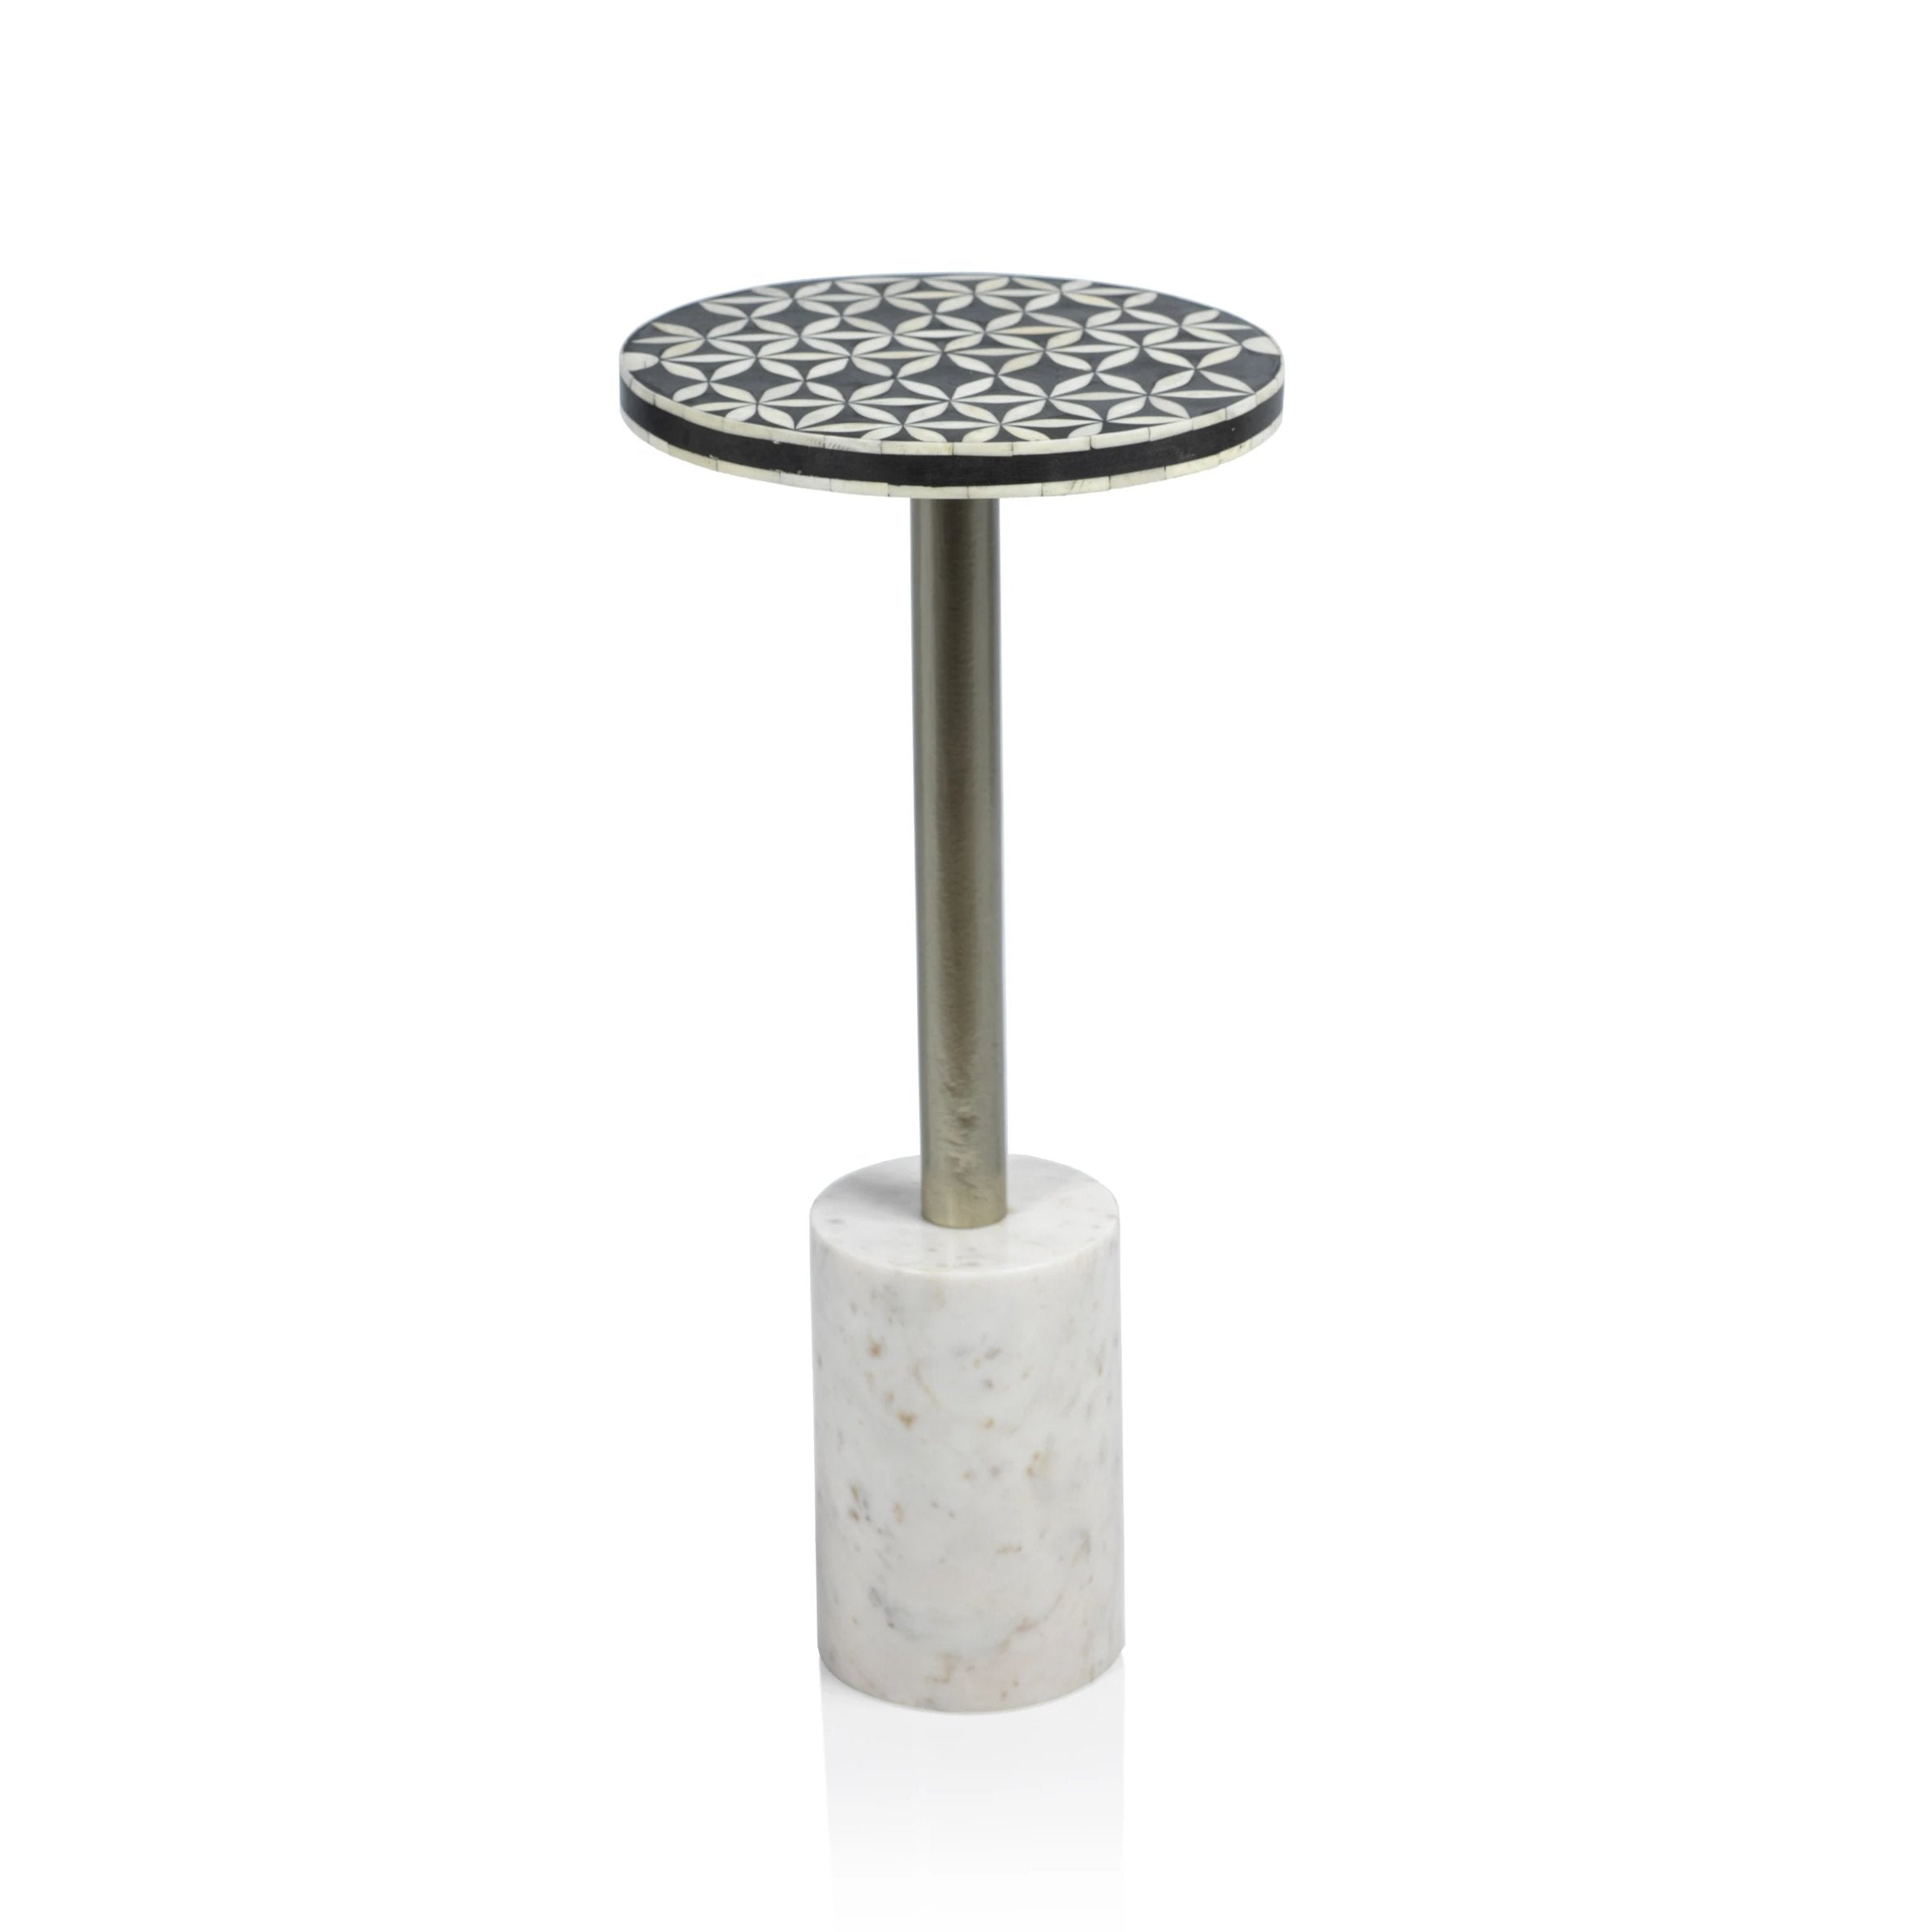 Sultana Round Cocktail Table on Marble Base - CARLYLE AVENUE